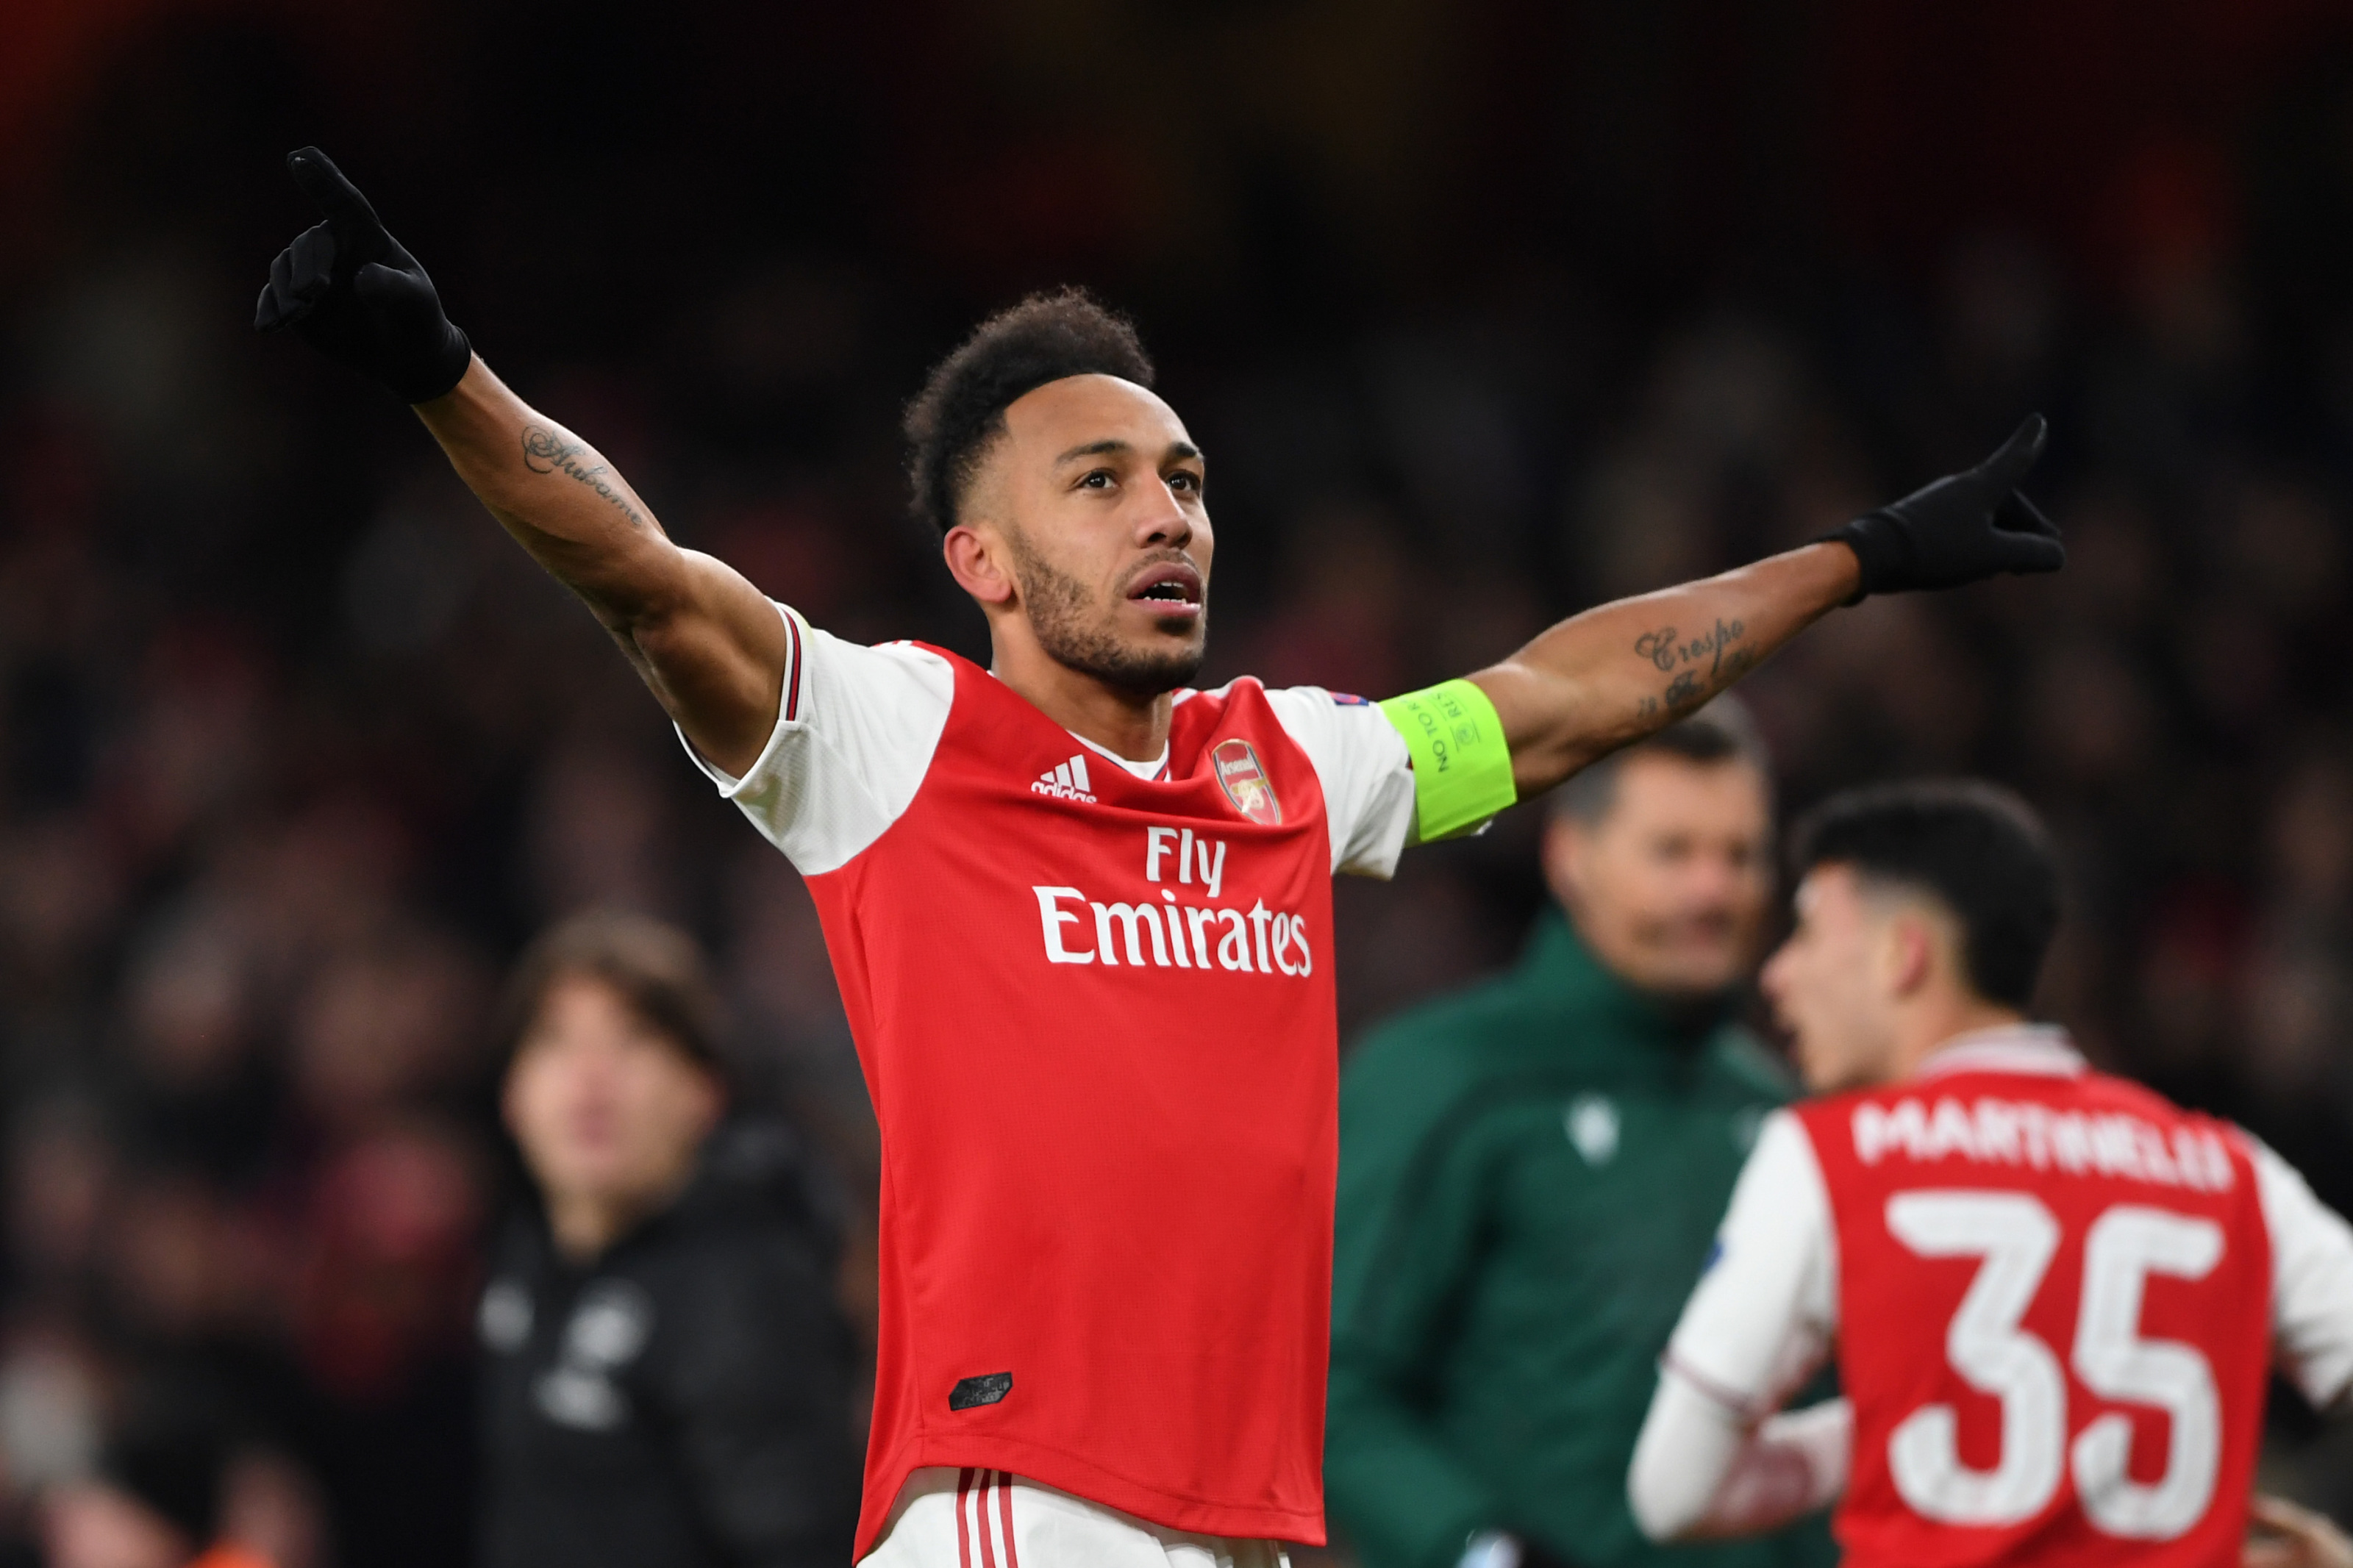 Arsenal: Real Madrid will offer player in return for Aubameyang